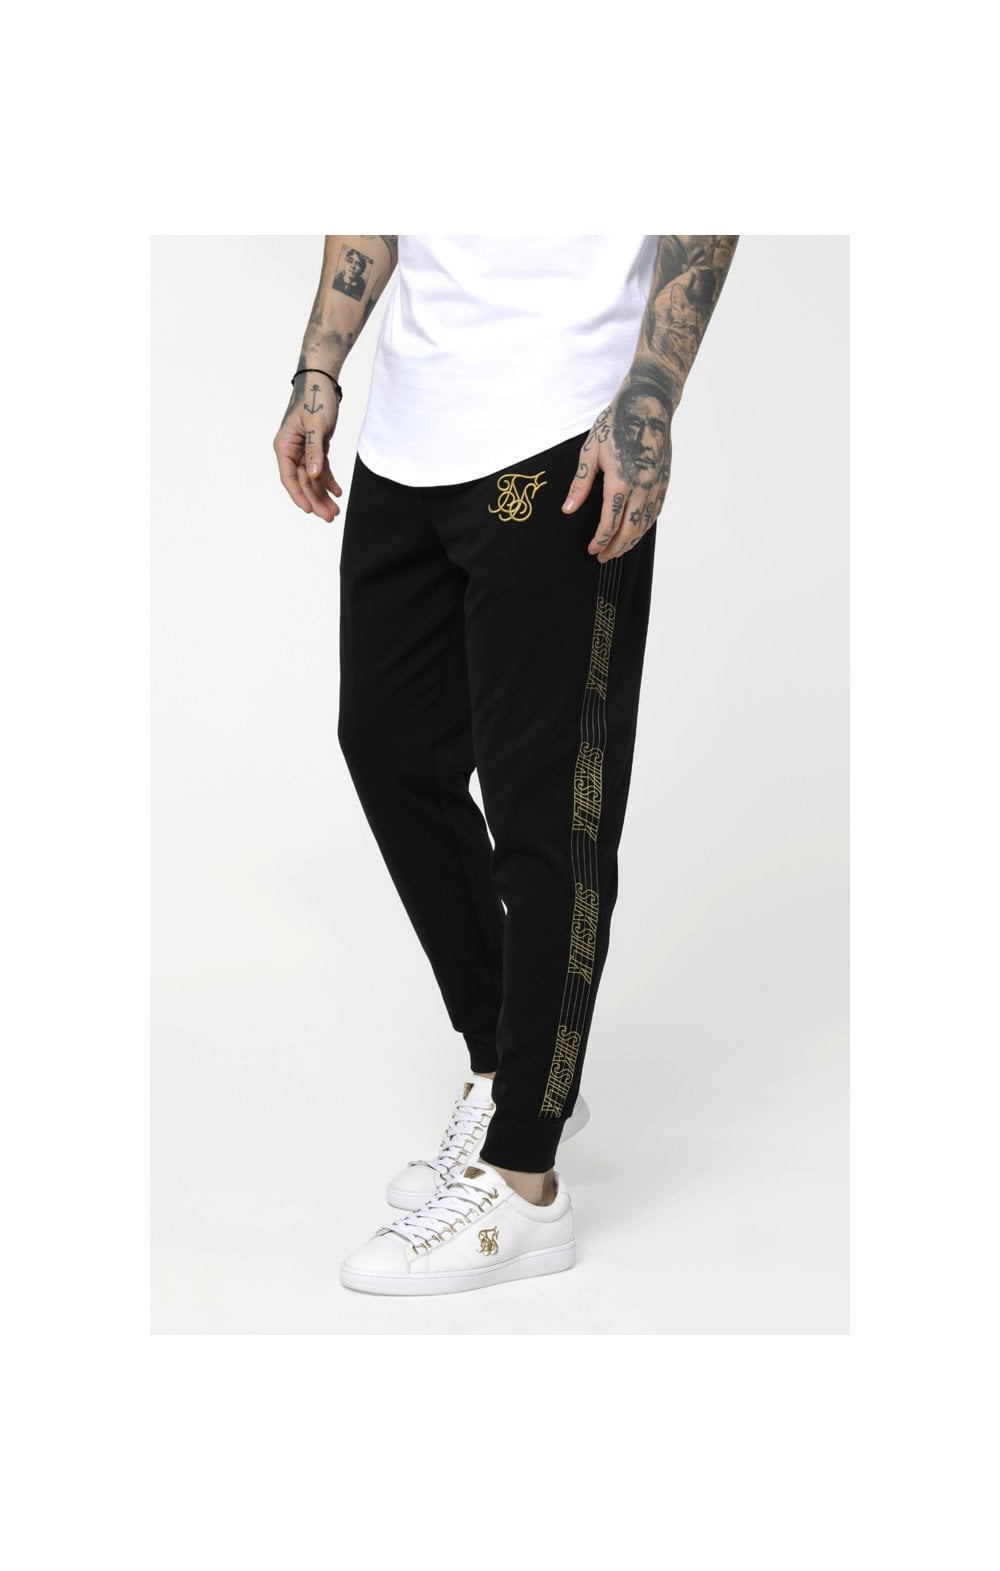 Load image into Gallery viewer, SikSilk Gold Edit Cuffed Cropped Runner Joggers - Black (1)